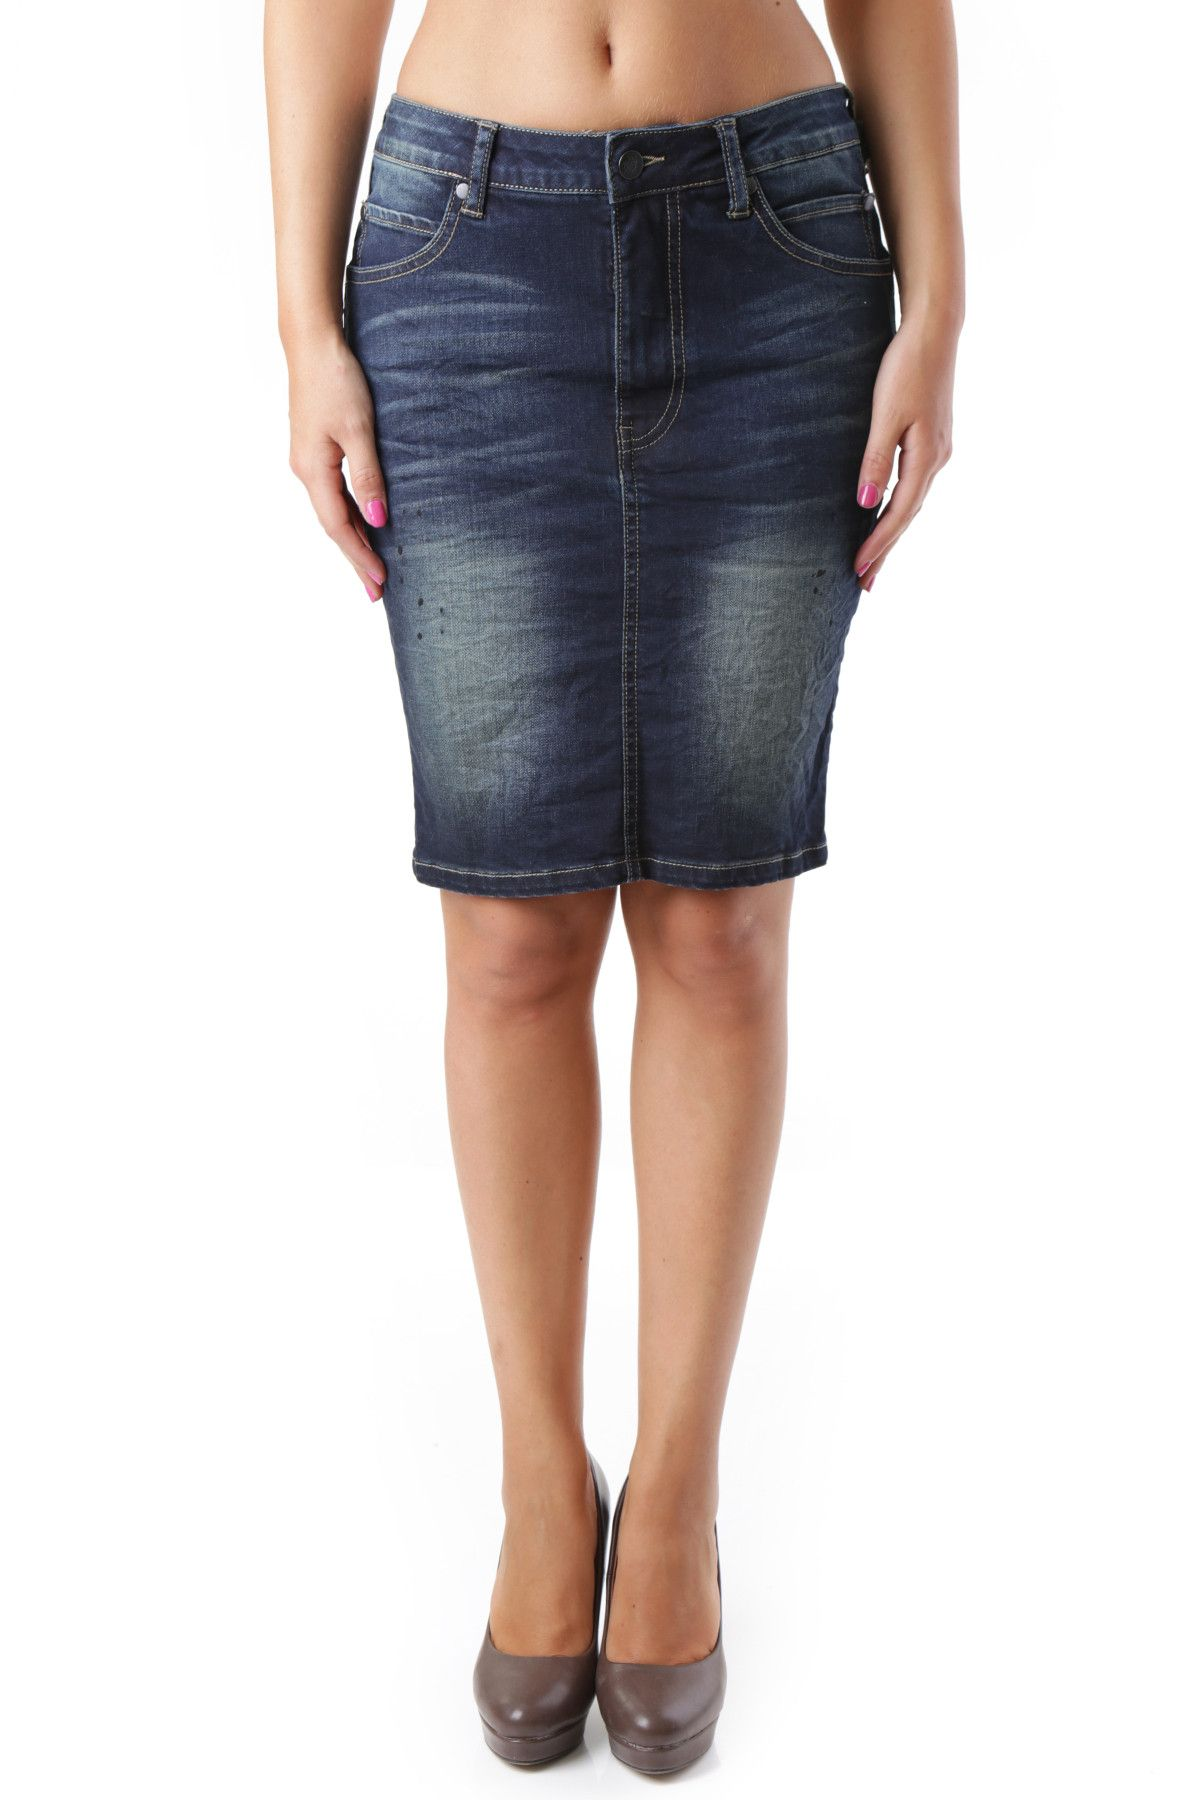 525 Women's Skirt In Blue